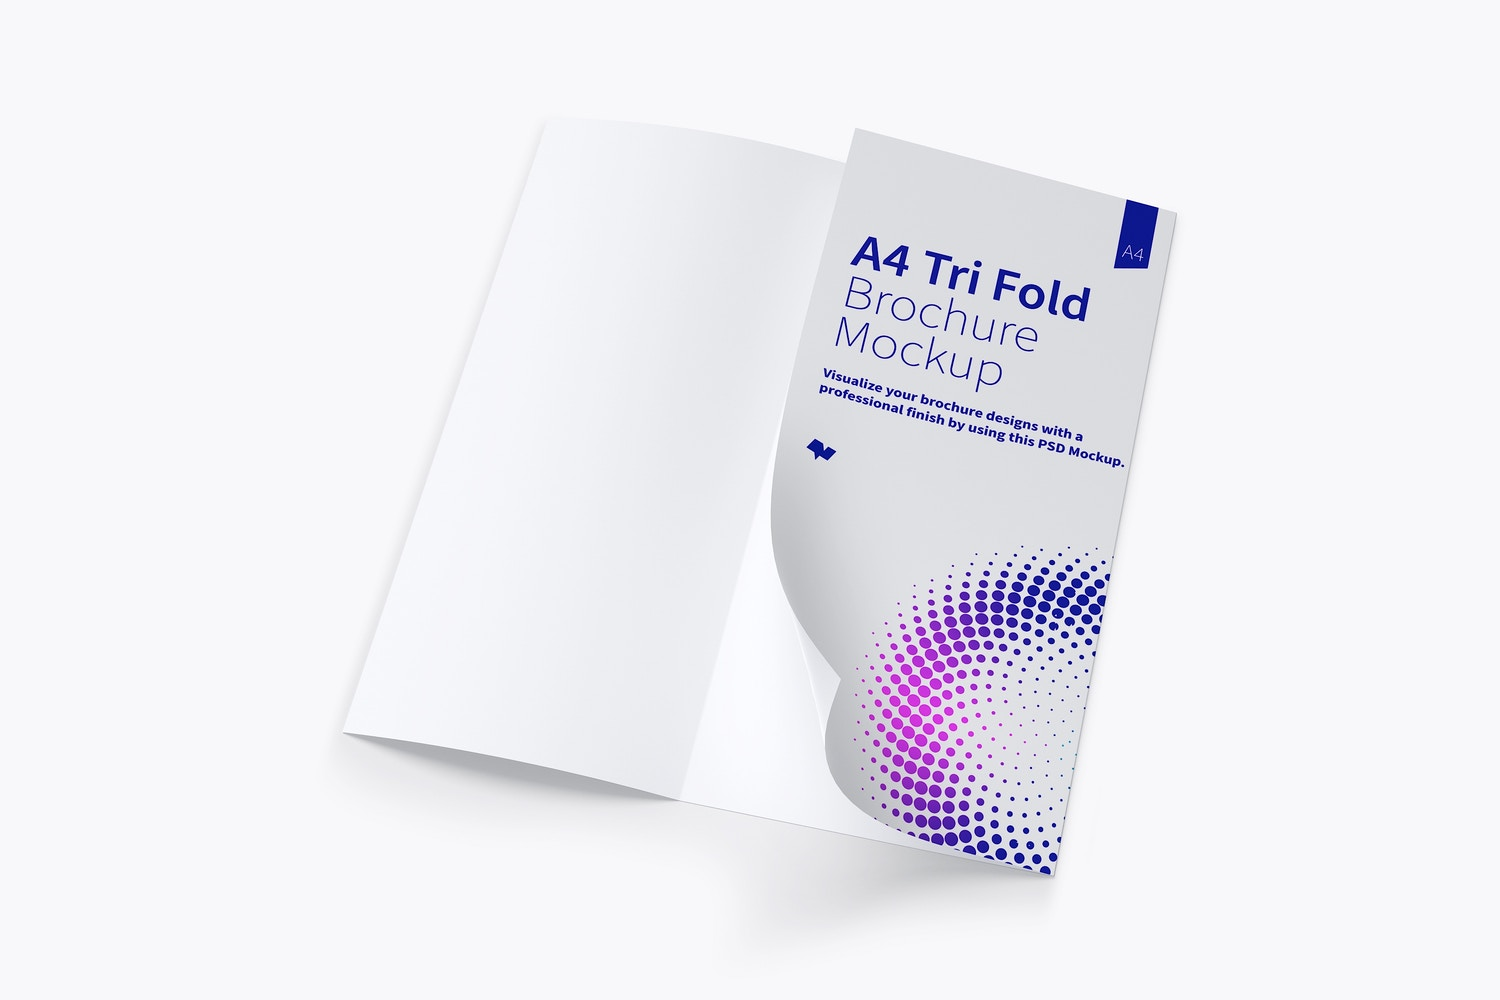 A4 Trifold Brochure Mockup 04 by Original Mockups on Original Mockups